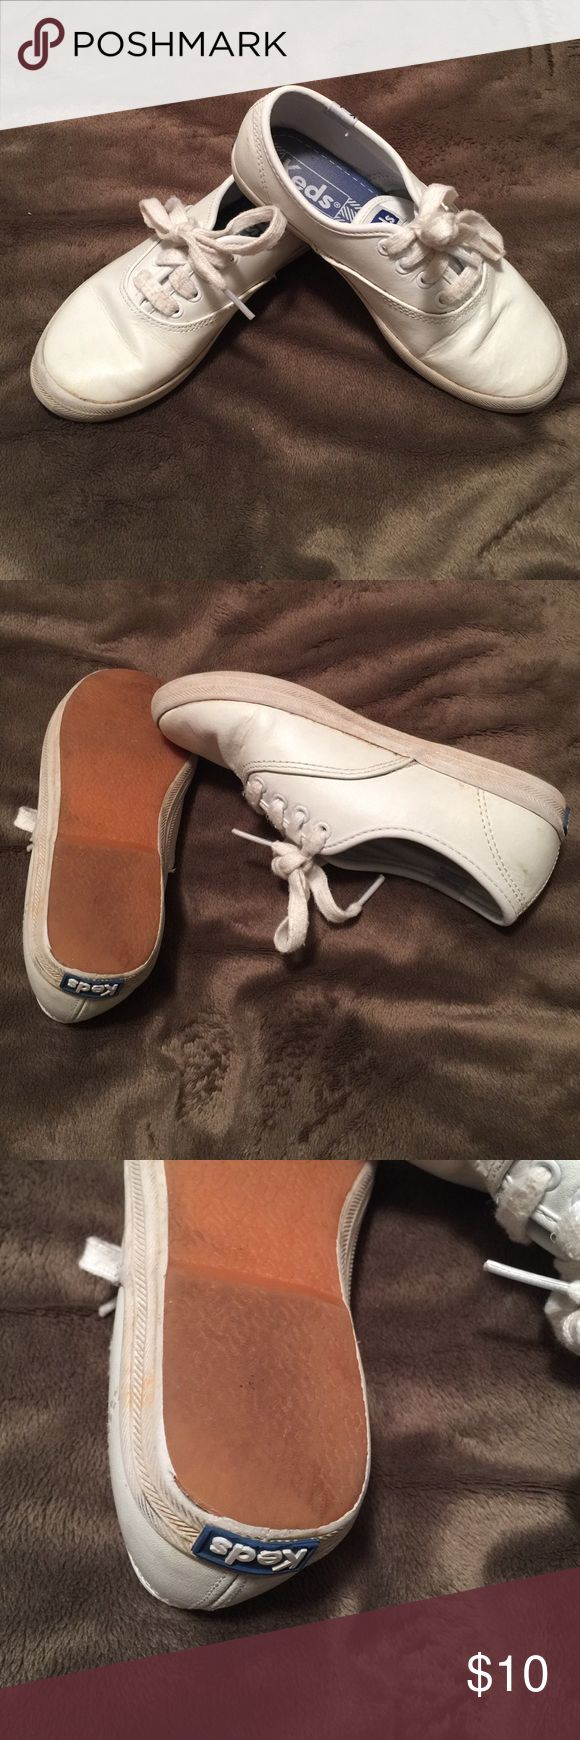 Girls Leather Keds Very good condition. Needs to be cleaned. See pic for wear. Keds Shoes Sneakers